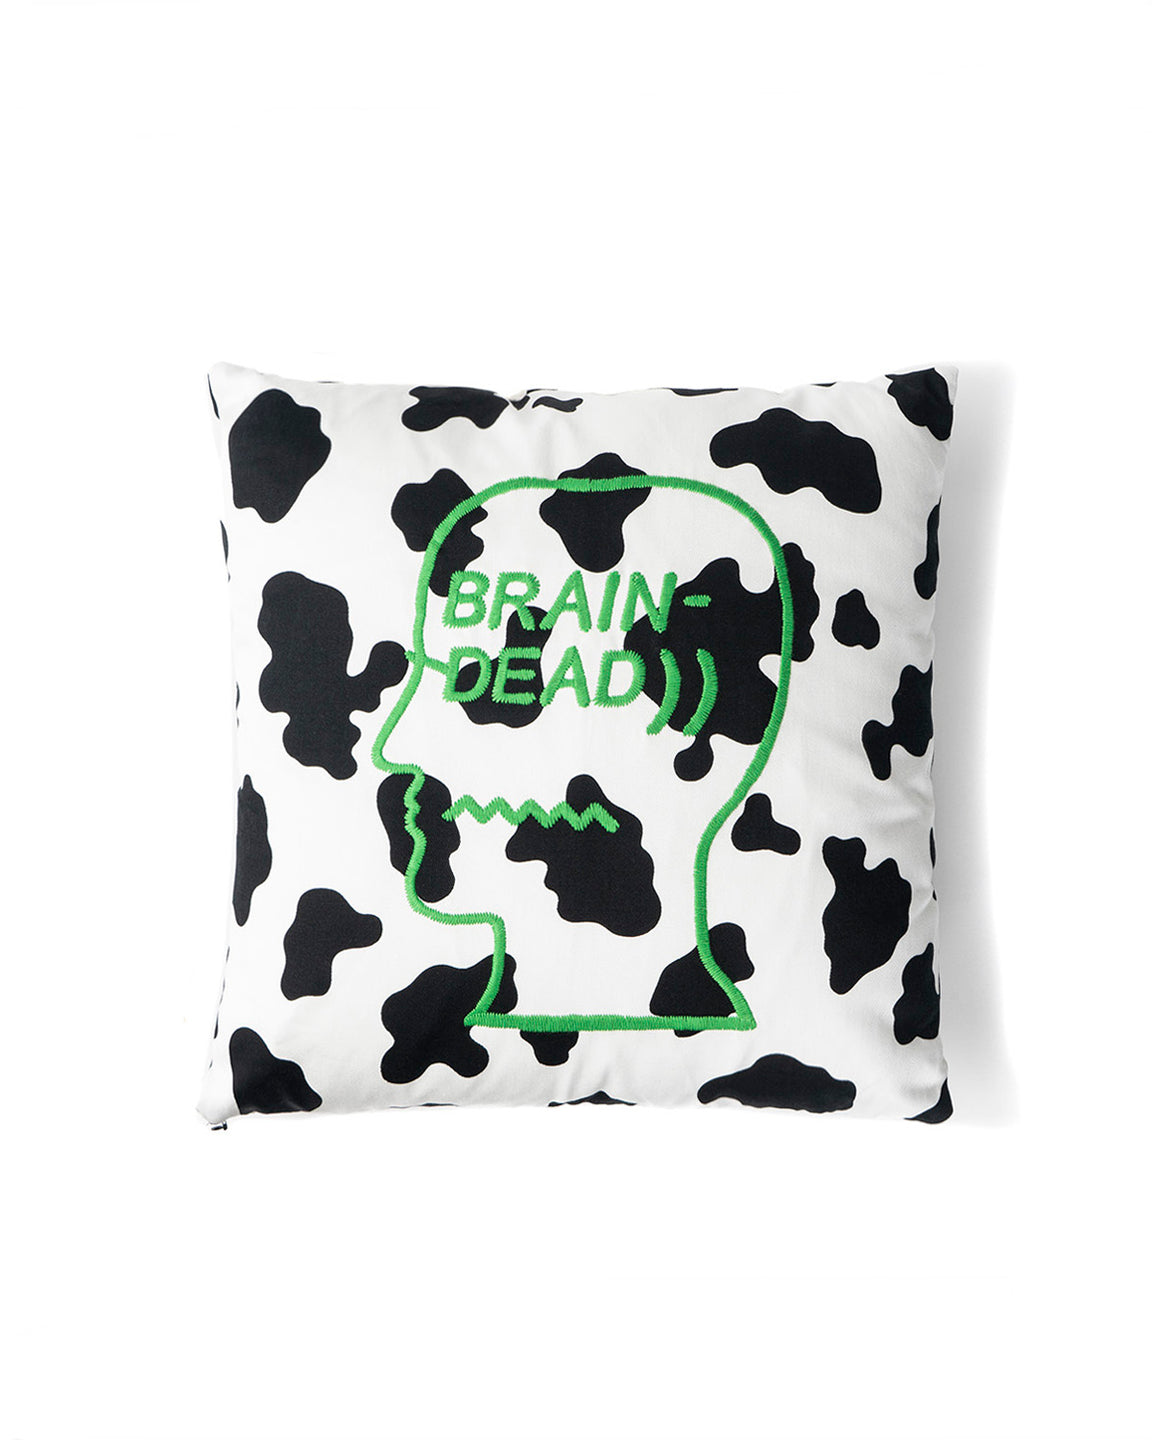 Cow Print Pillow - Cow